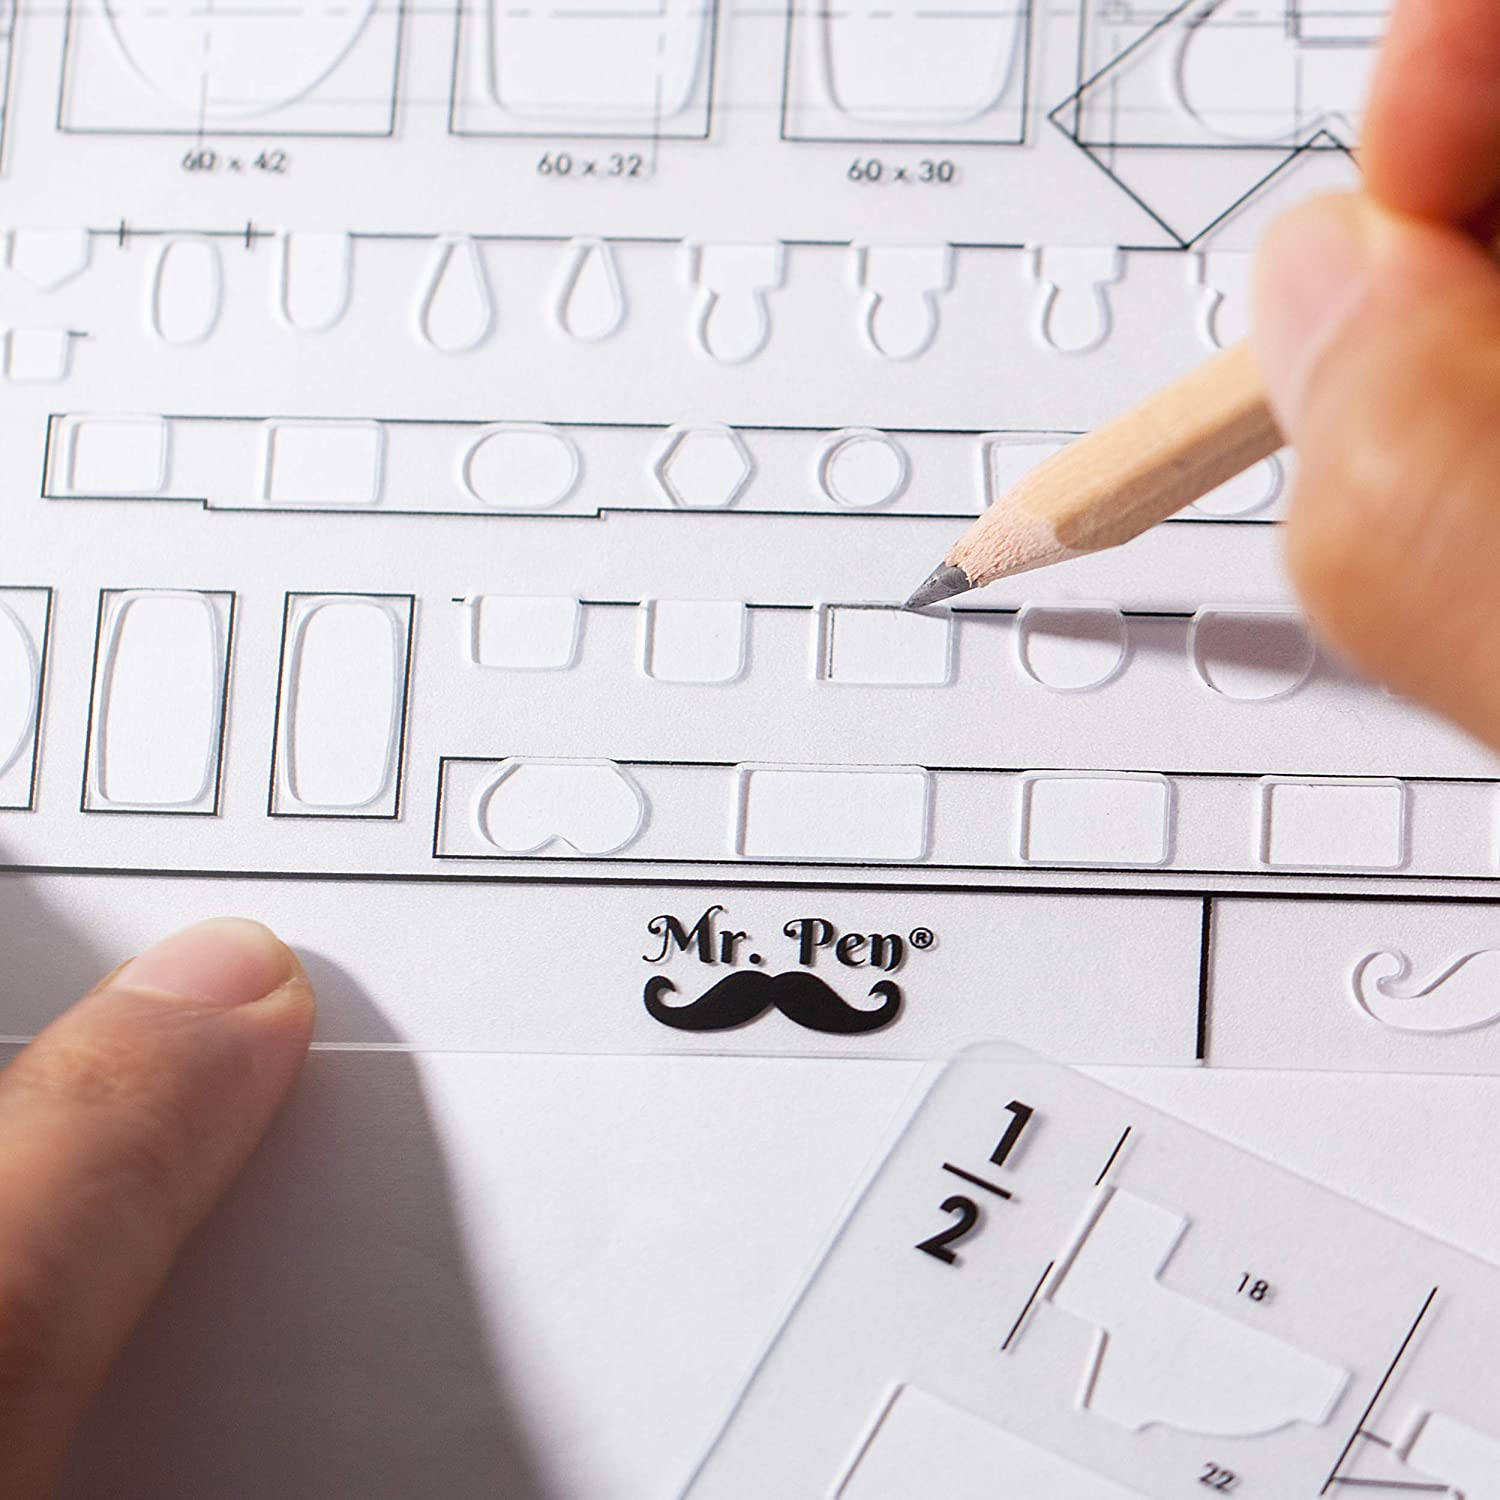 Mr. Pen- Plumbing Template, Architectural Templates, Bathroom Template, Toilet Template, Drafting Tools, Drawing Template, Template Architecture, Drafting Ruler Shapes, Stencils, Plumbing Fixtures: Arts, Crafts & Sewing